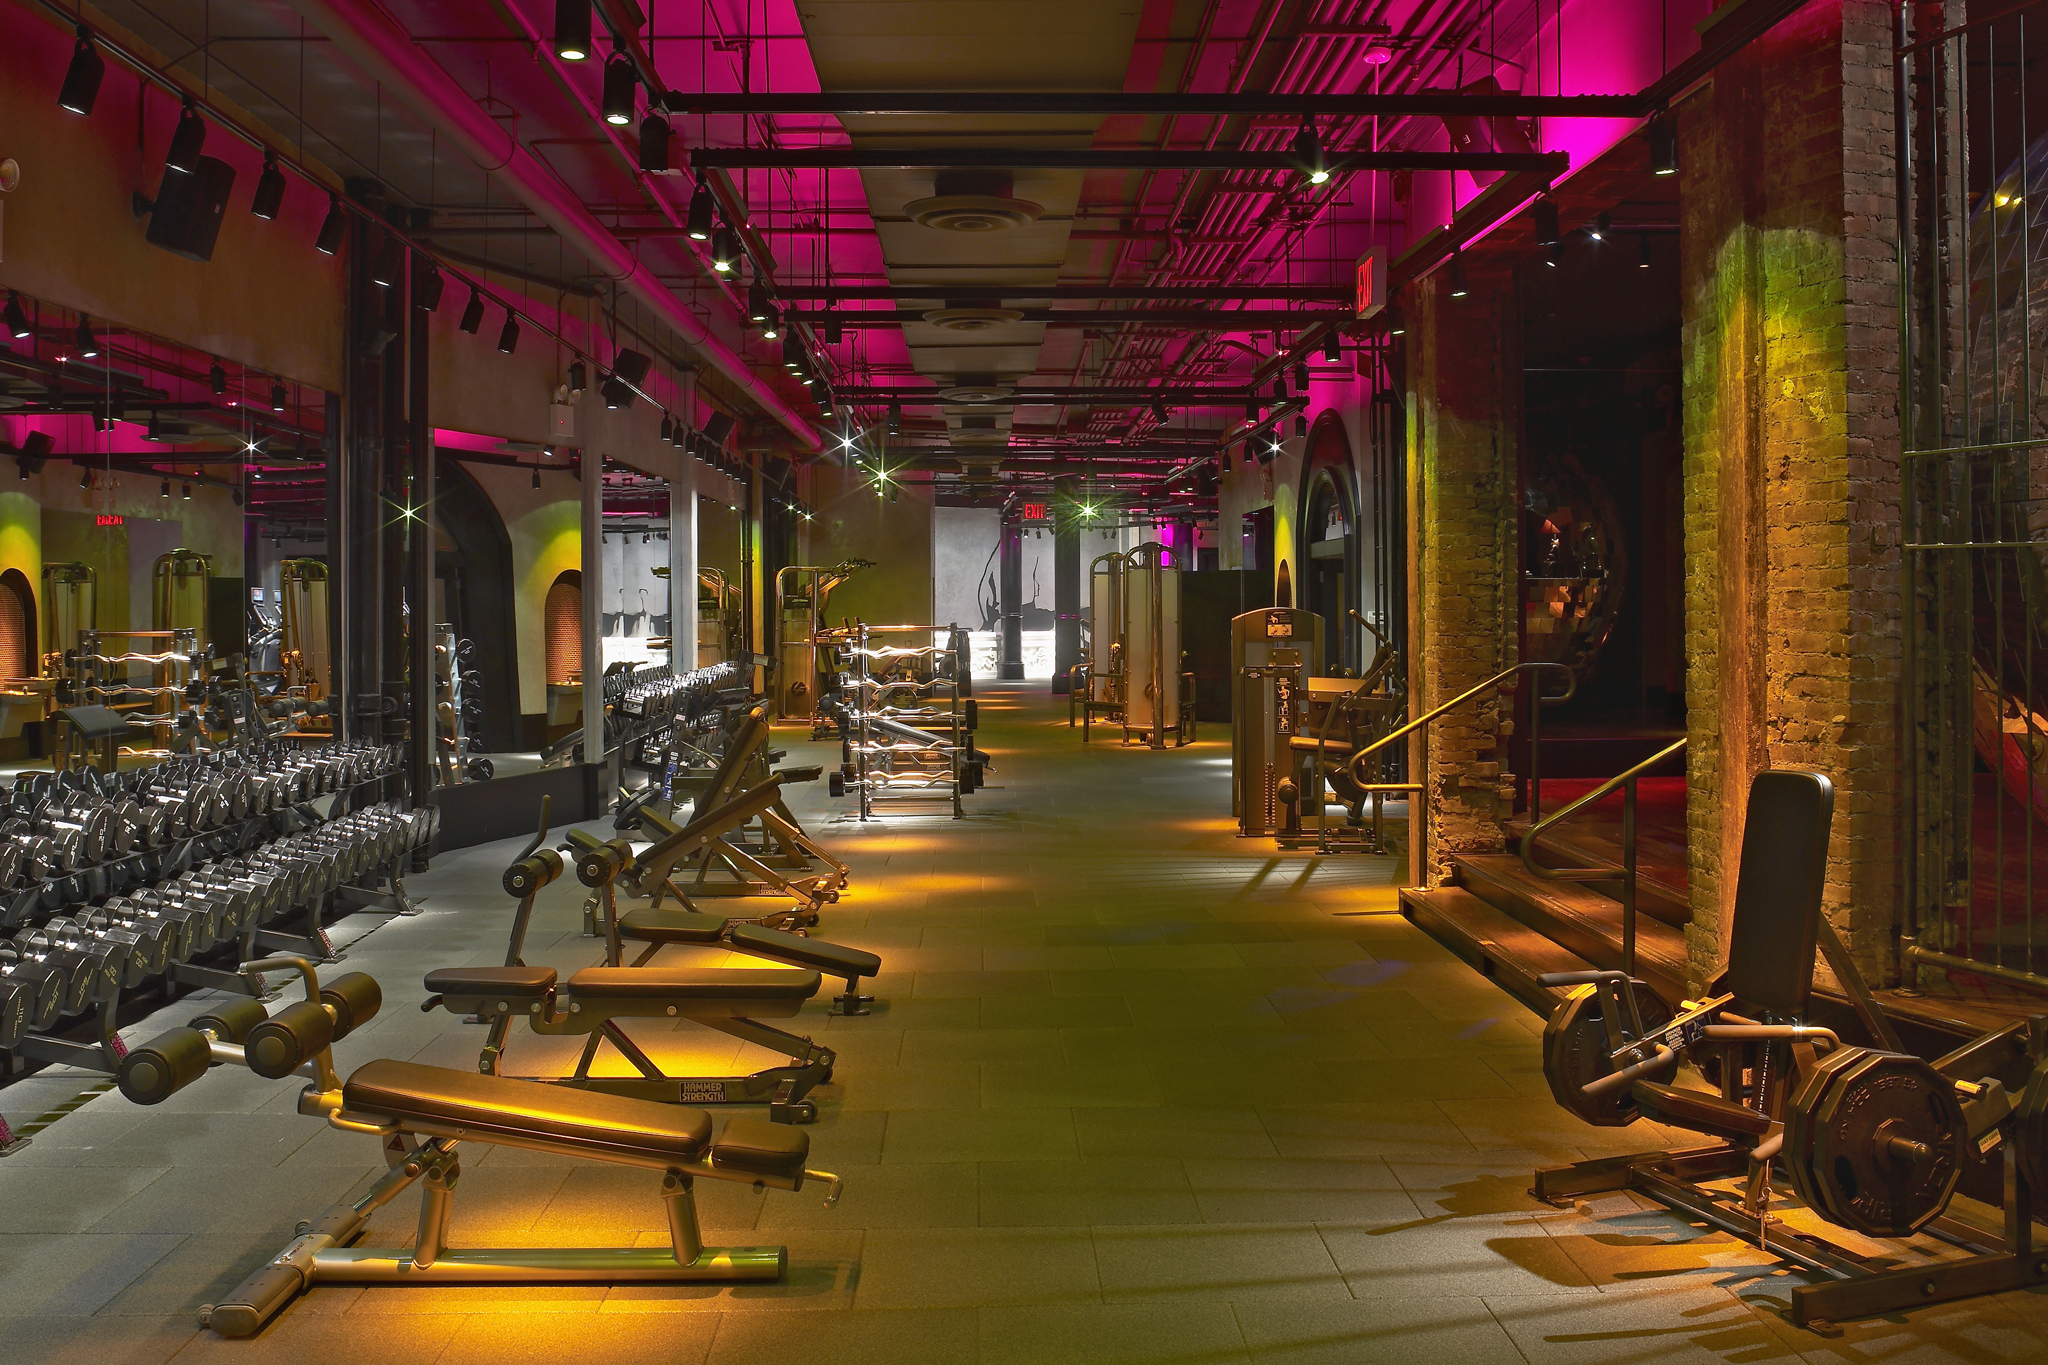 Whats The Best Gym For You Compare Major Gyms In New York City on Nightclub Interior Design